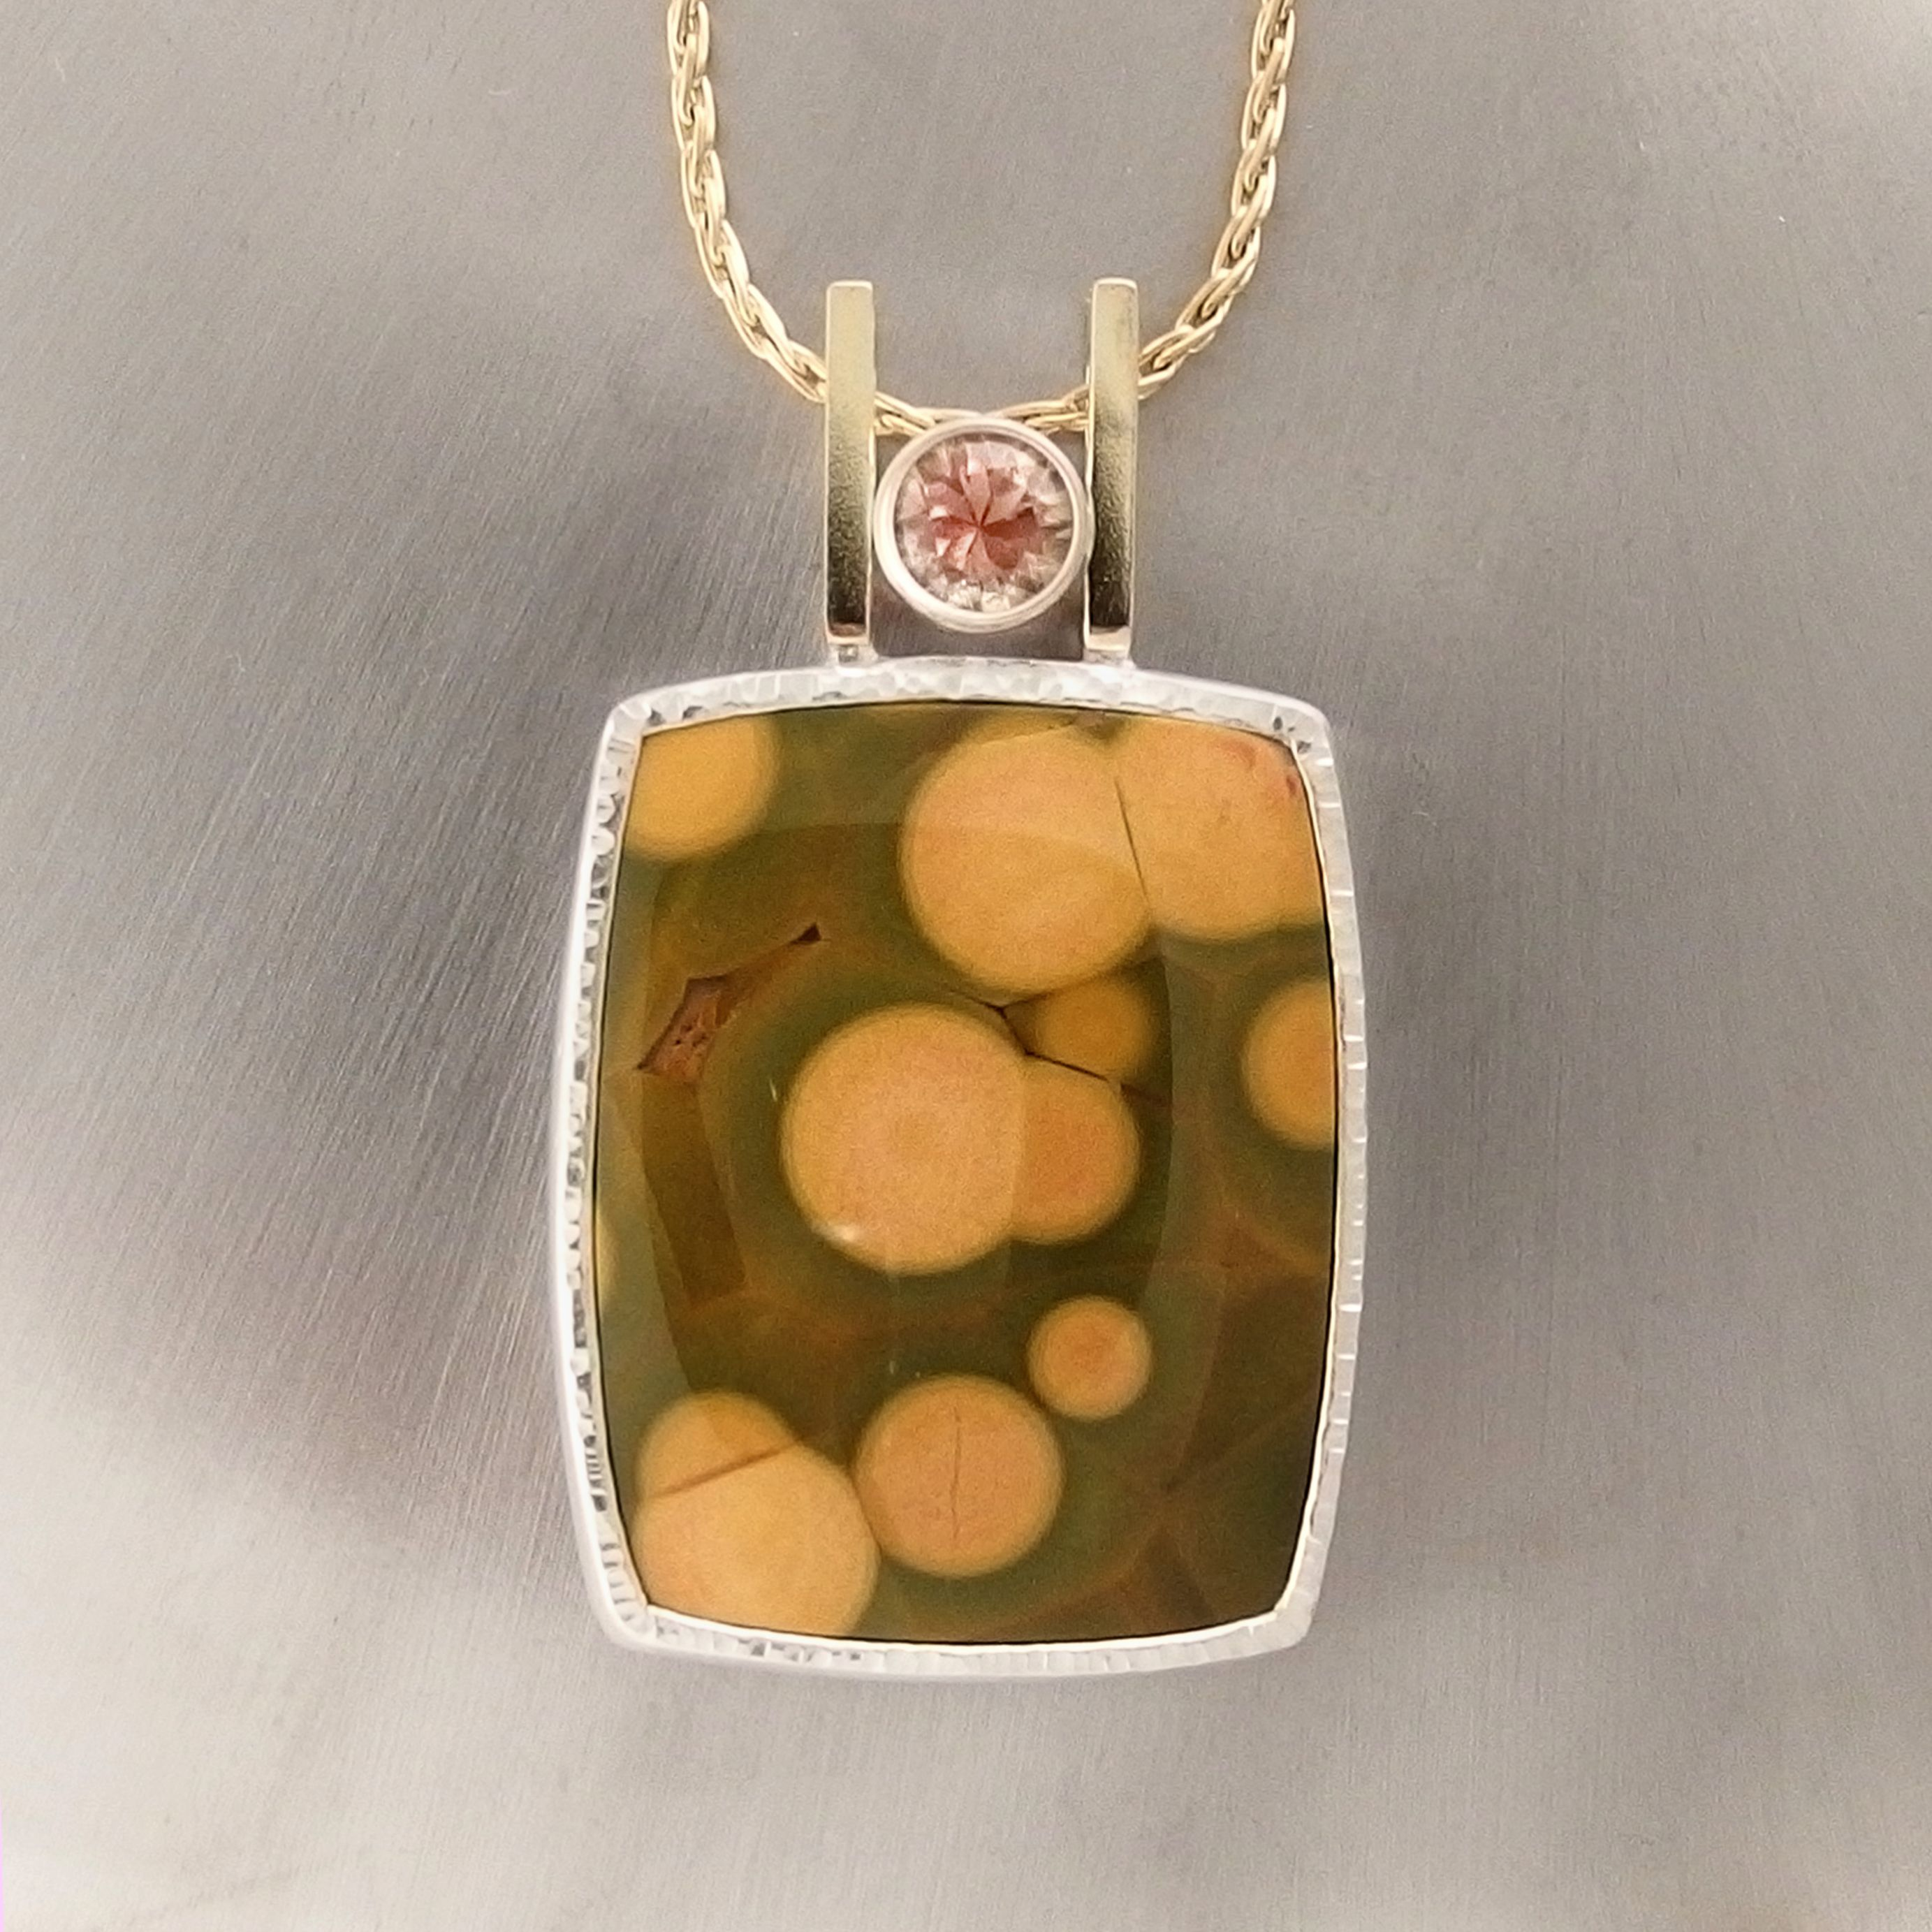 necklace sunstone pendant hendrix with and k s aventurine wouters products